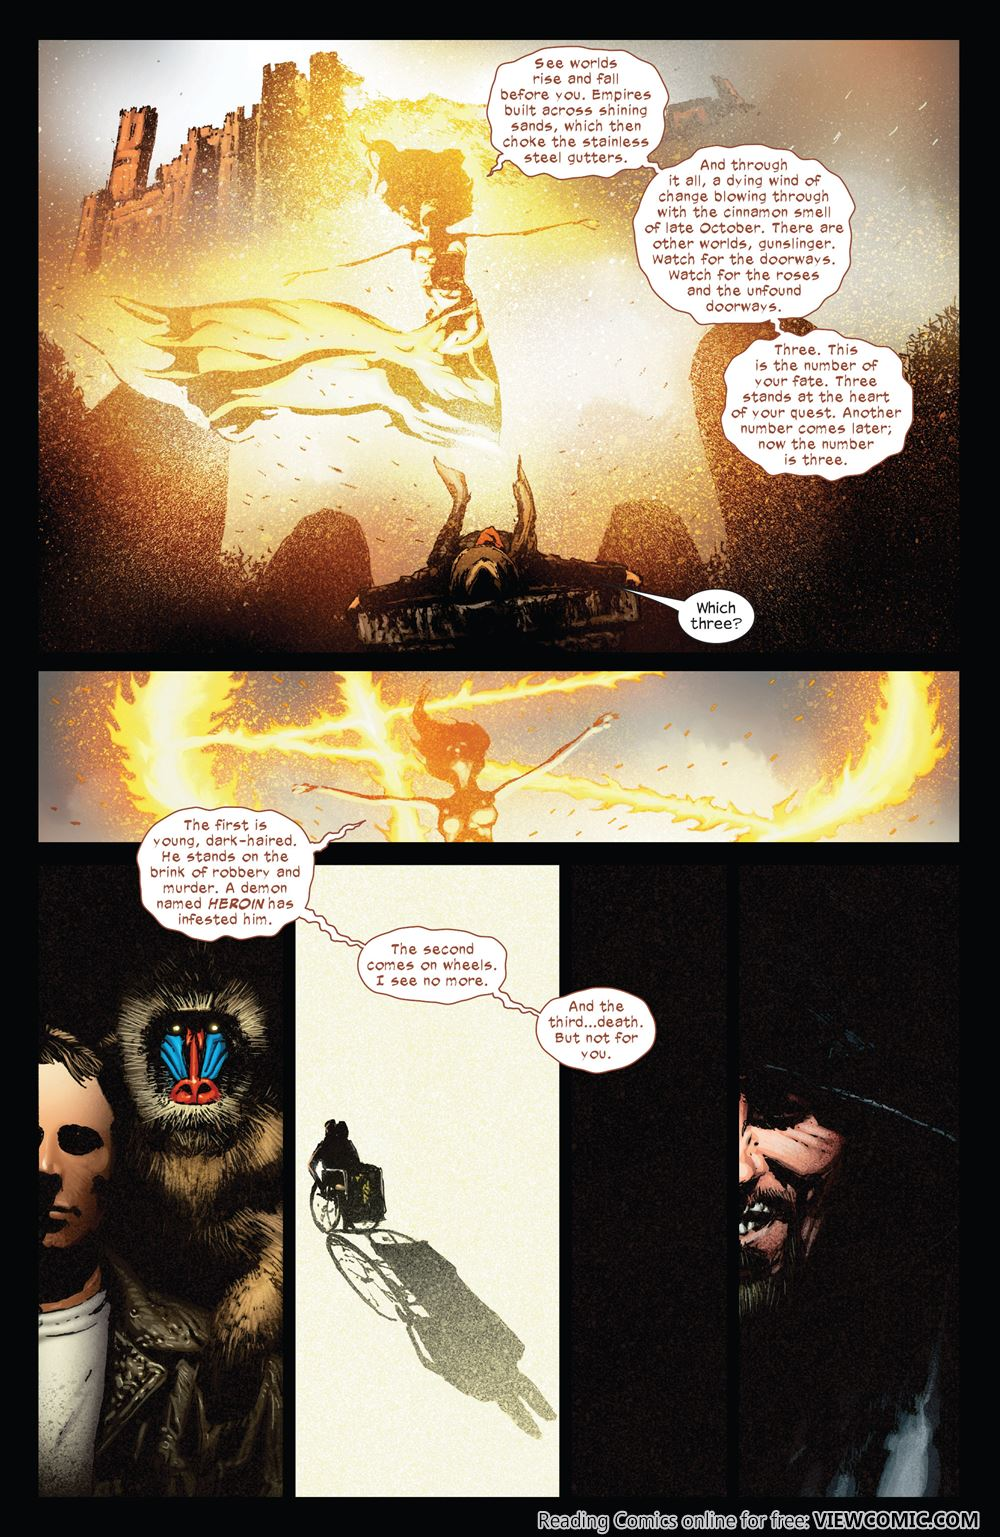 The Dark Tower The Gunslinger The Way Station 05 Of 05 2012 Viewcomic Reading Comics Online For Free 2019